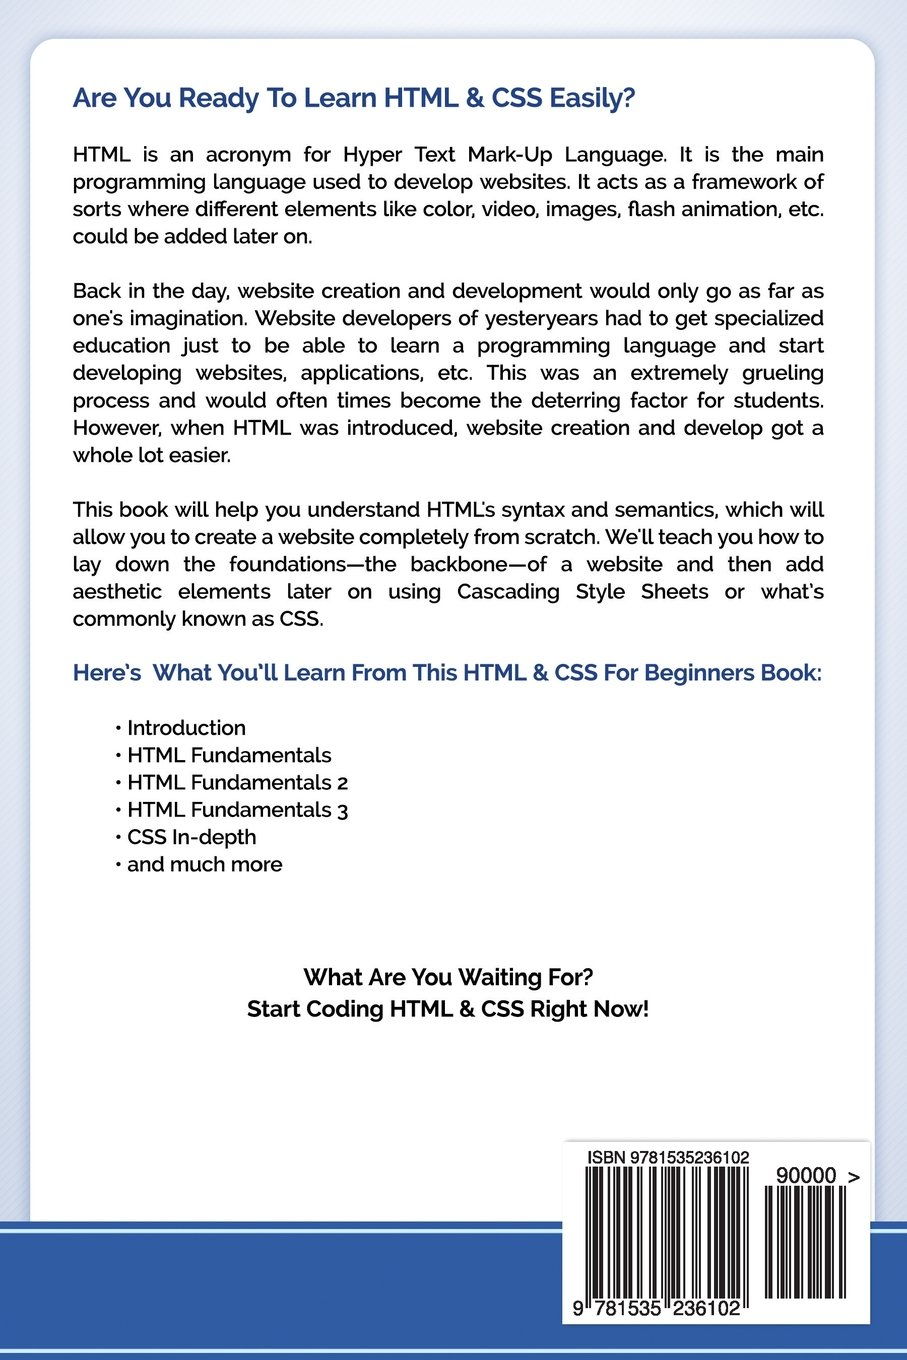 Html css for beginners your step by step guide to easily html css programming in 7 days icode academy 9781535236102 amazon com books